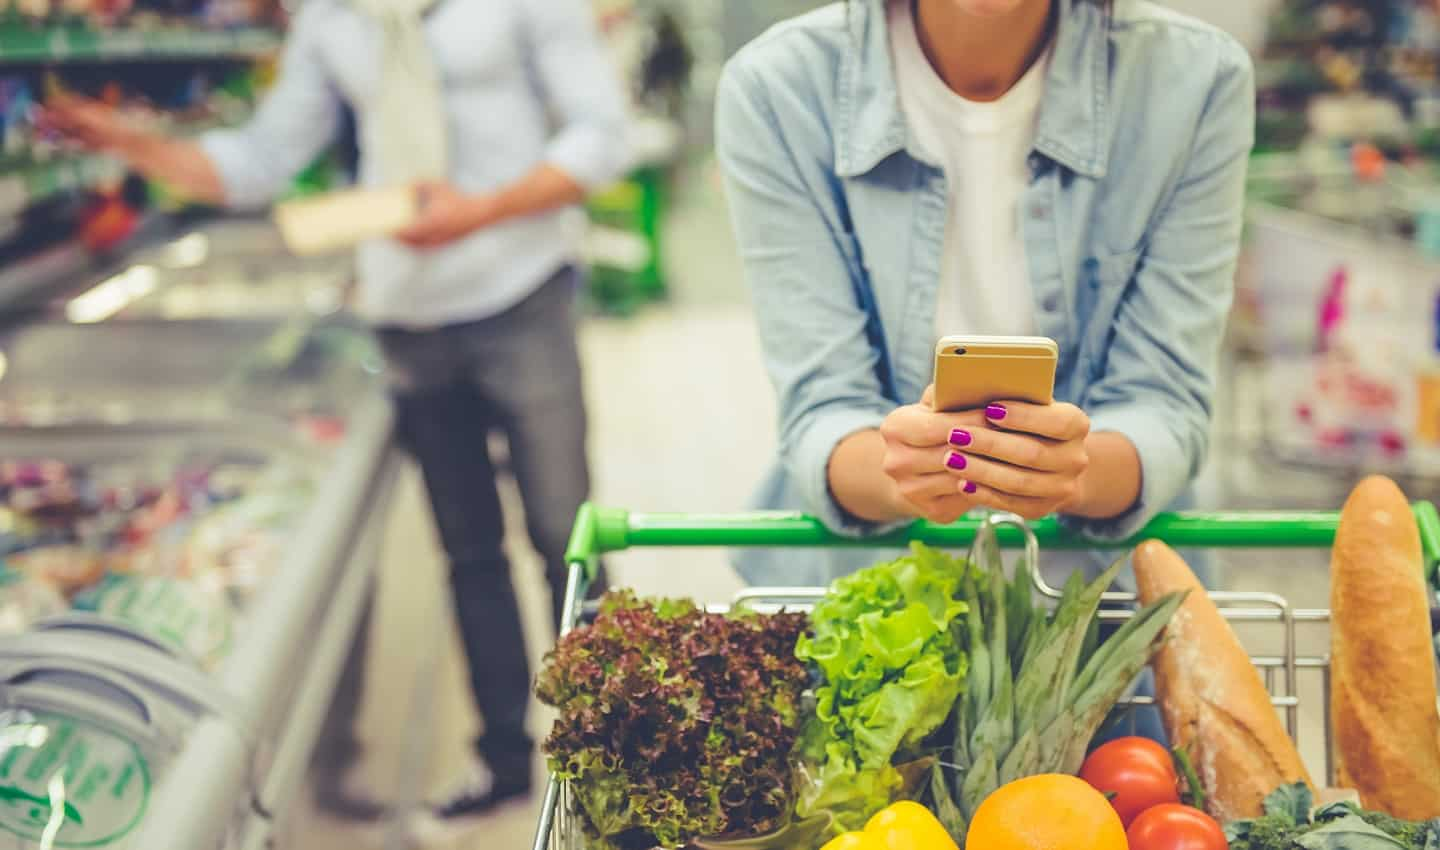 woman searching phone in grocery story for how to save money on food